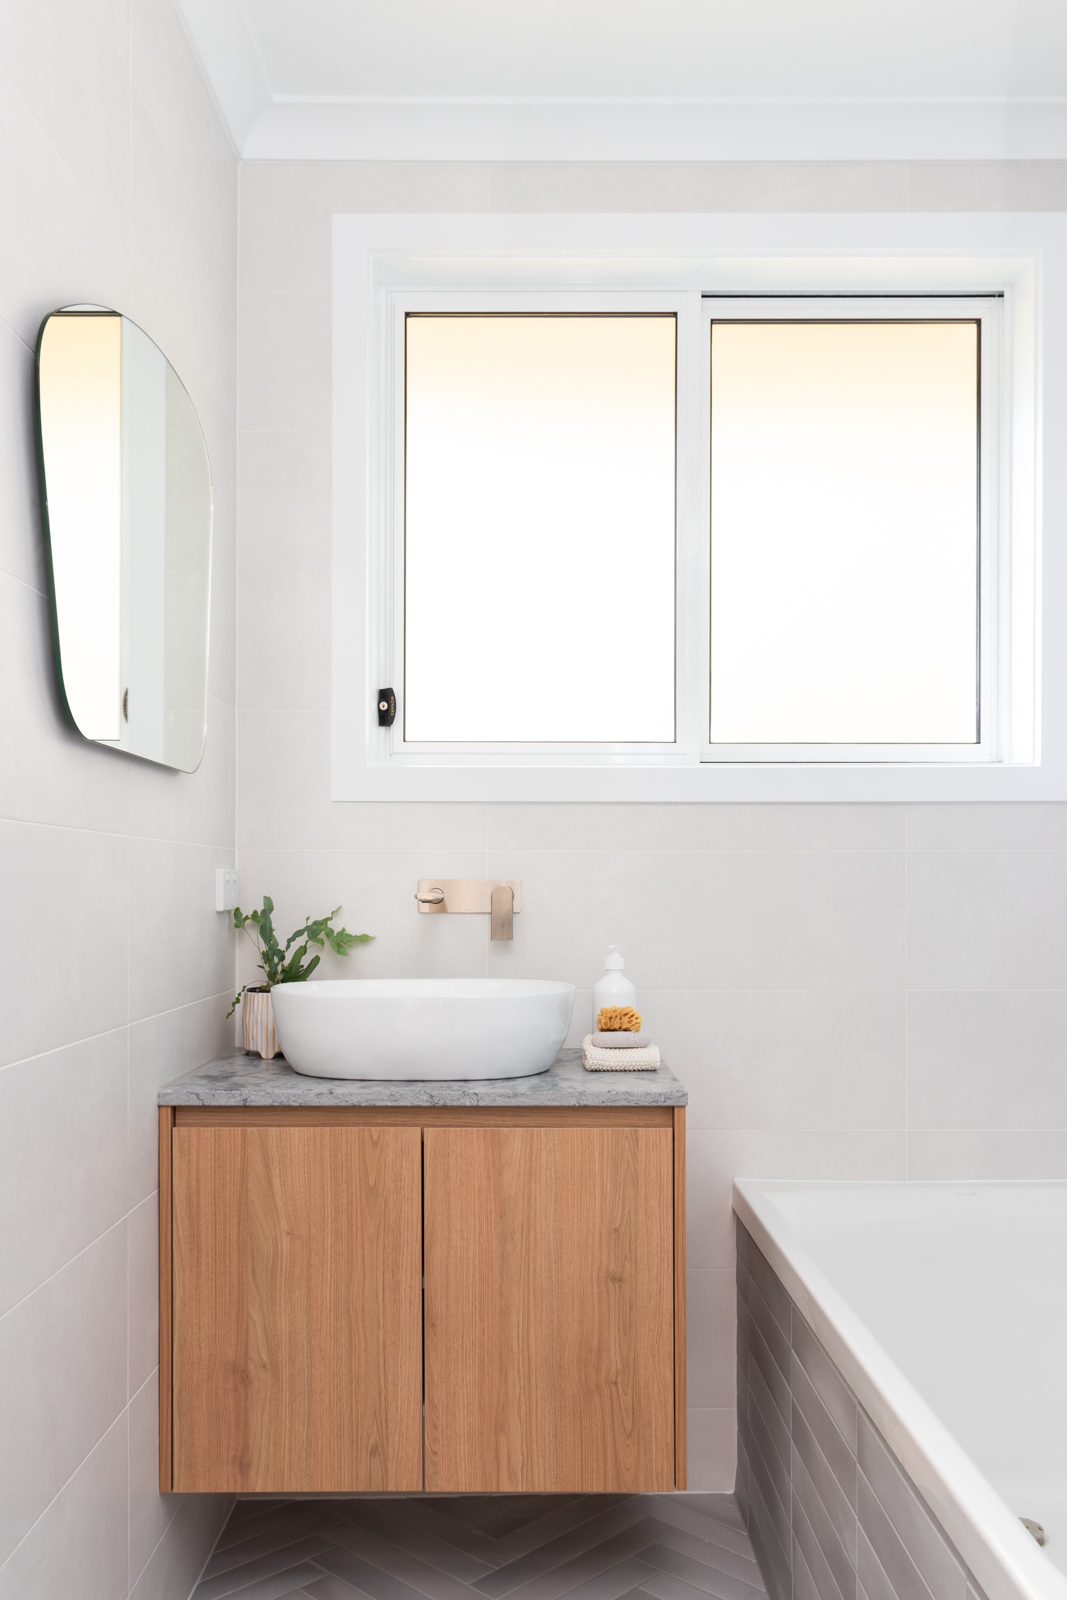 Timber vanity with organic shaped mirror